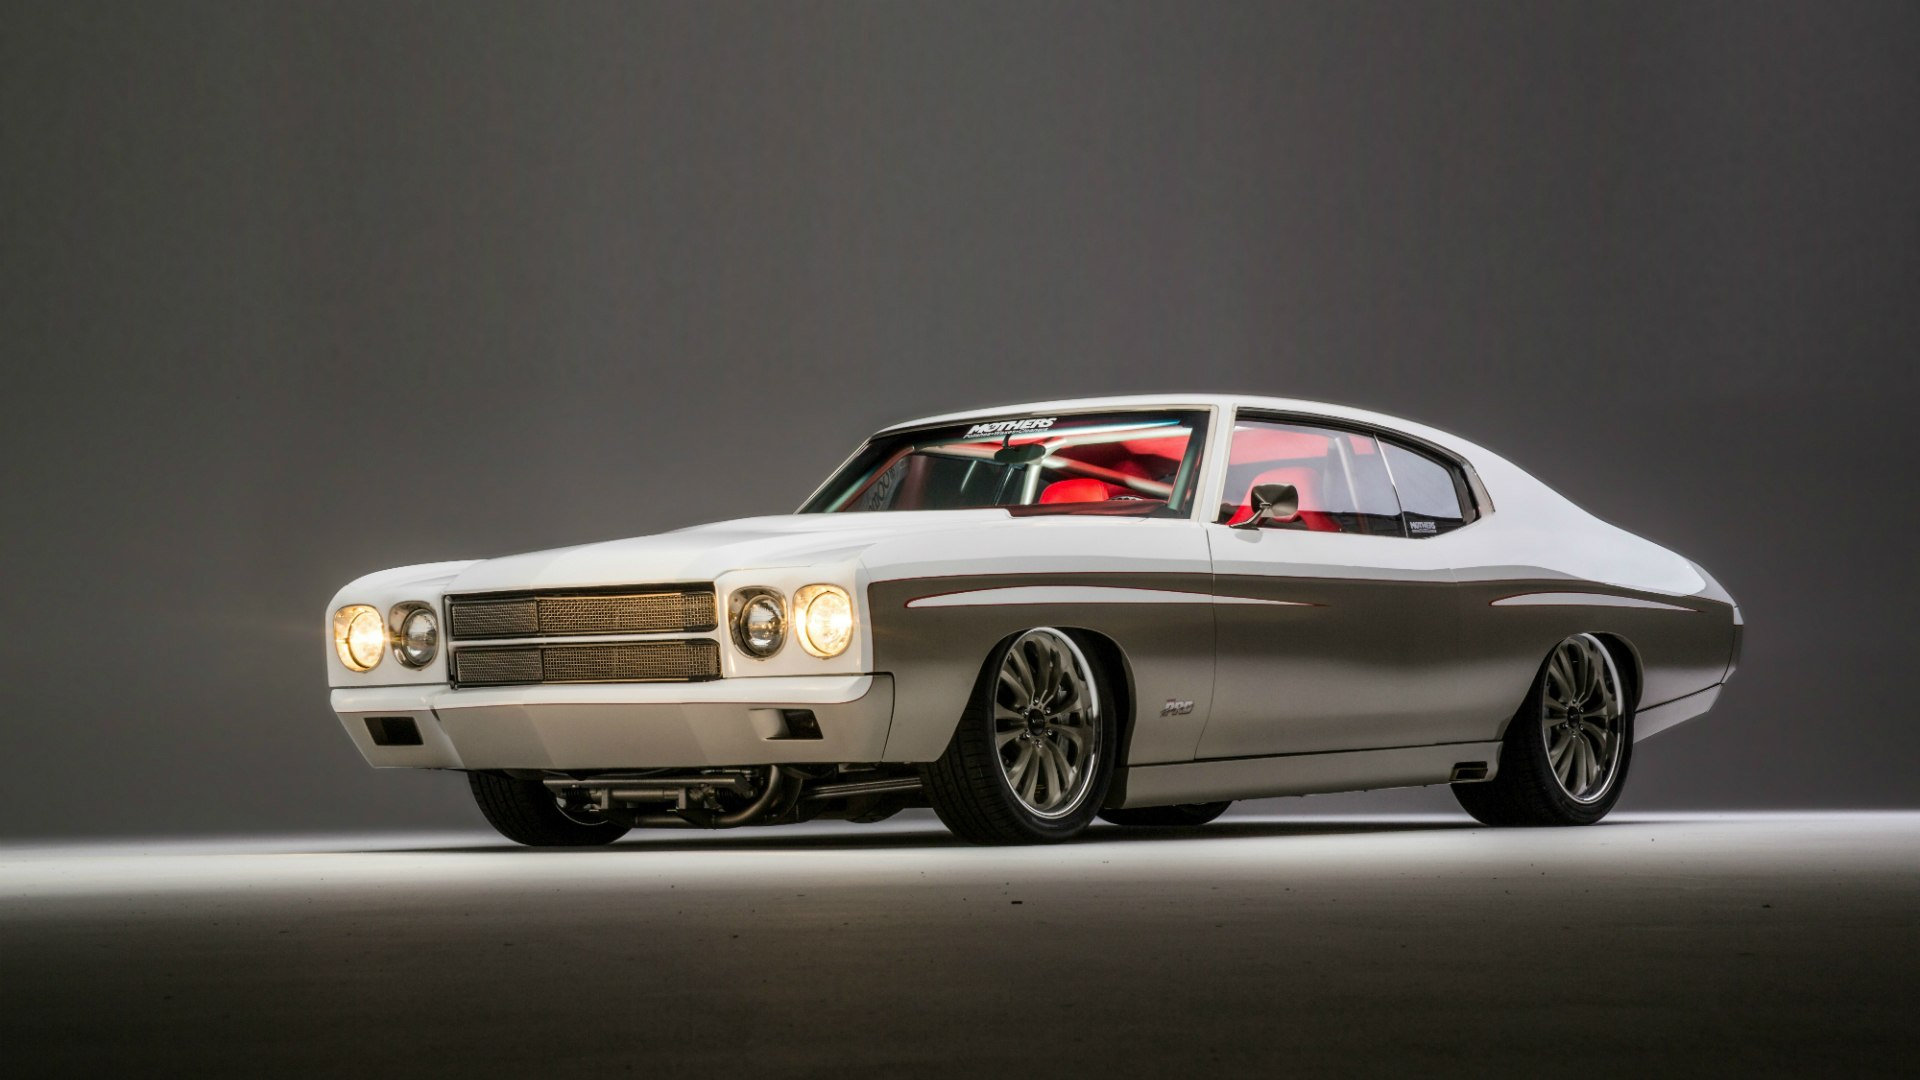 Chevelle SS beautiful car muscle car tuning wallpaper background 1920x1080